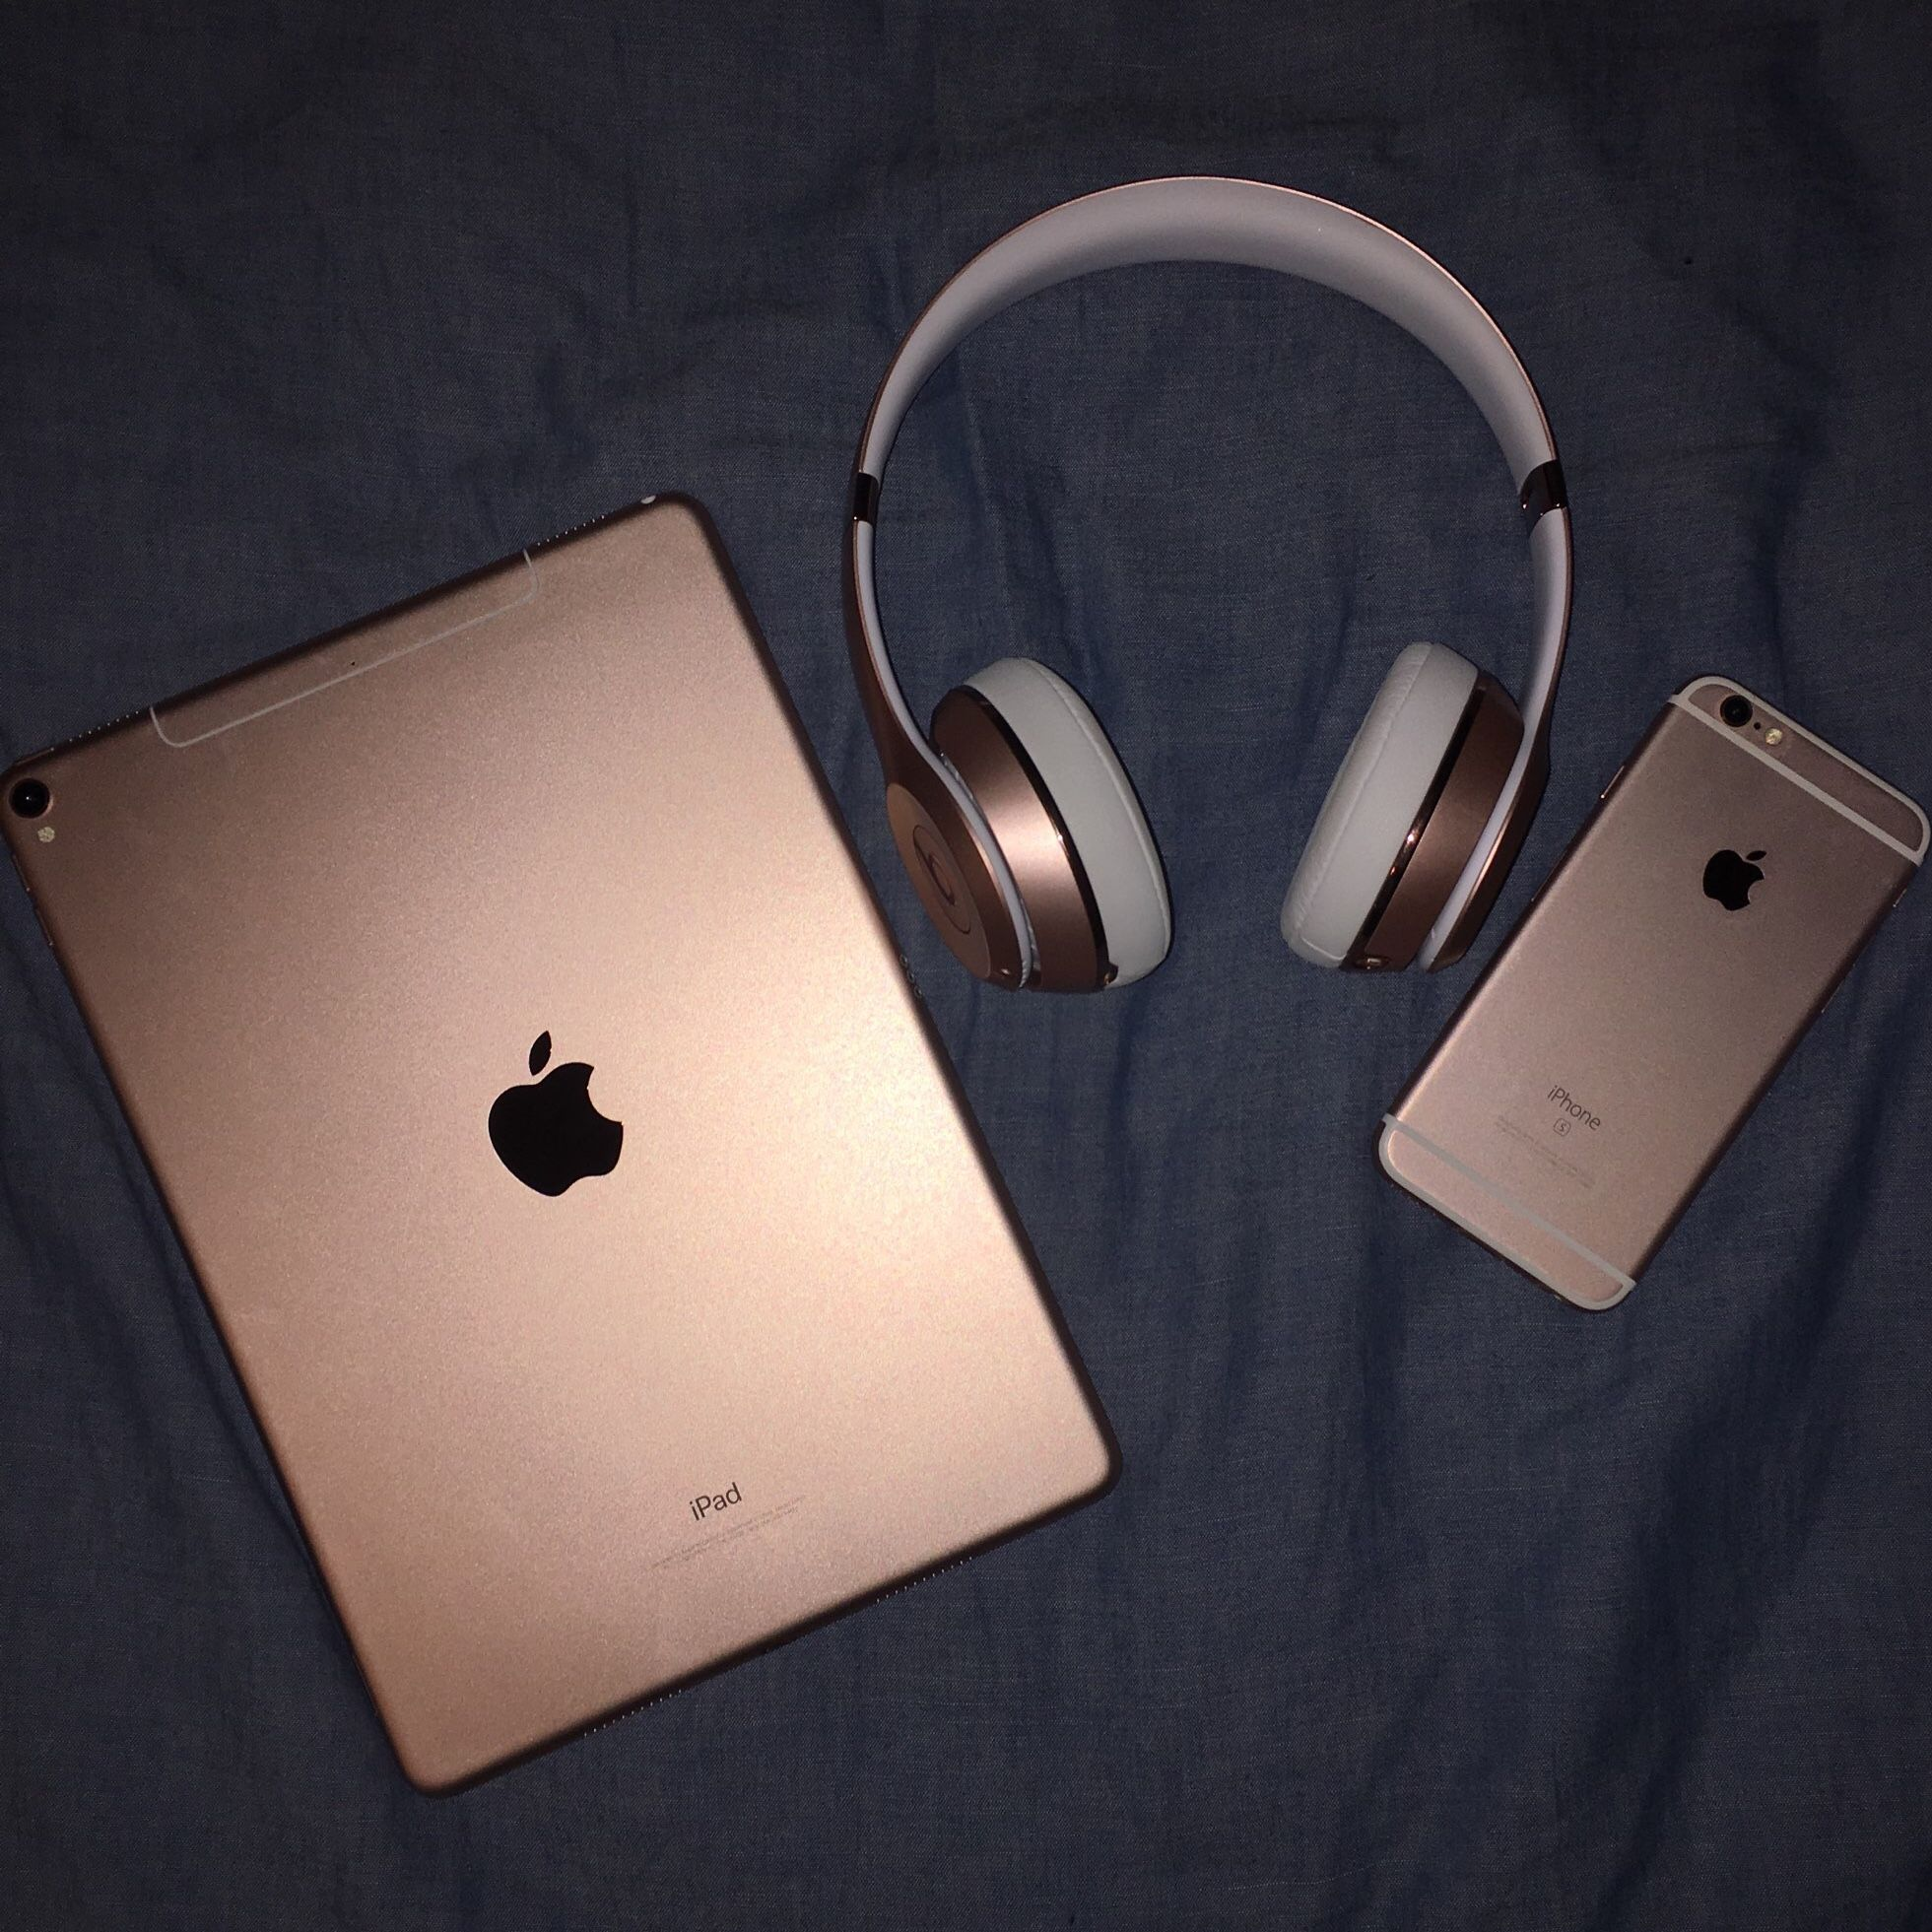 Rose Gold Collection Electronics Apple Products Iphone 6s Ipad Beats Solo Vsco Apple Products Electronics Apple Iphone